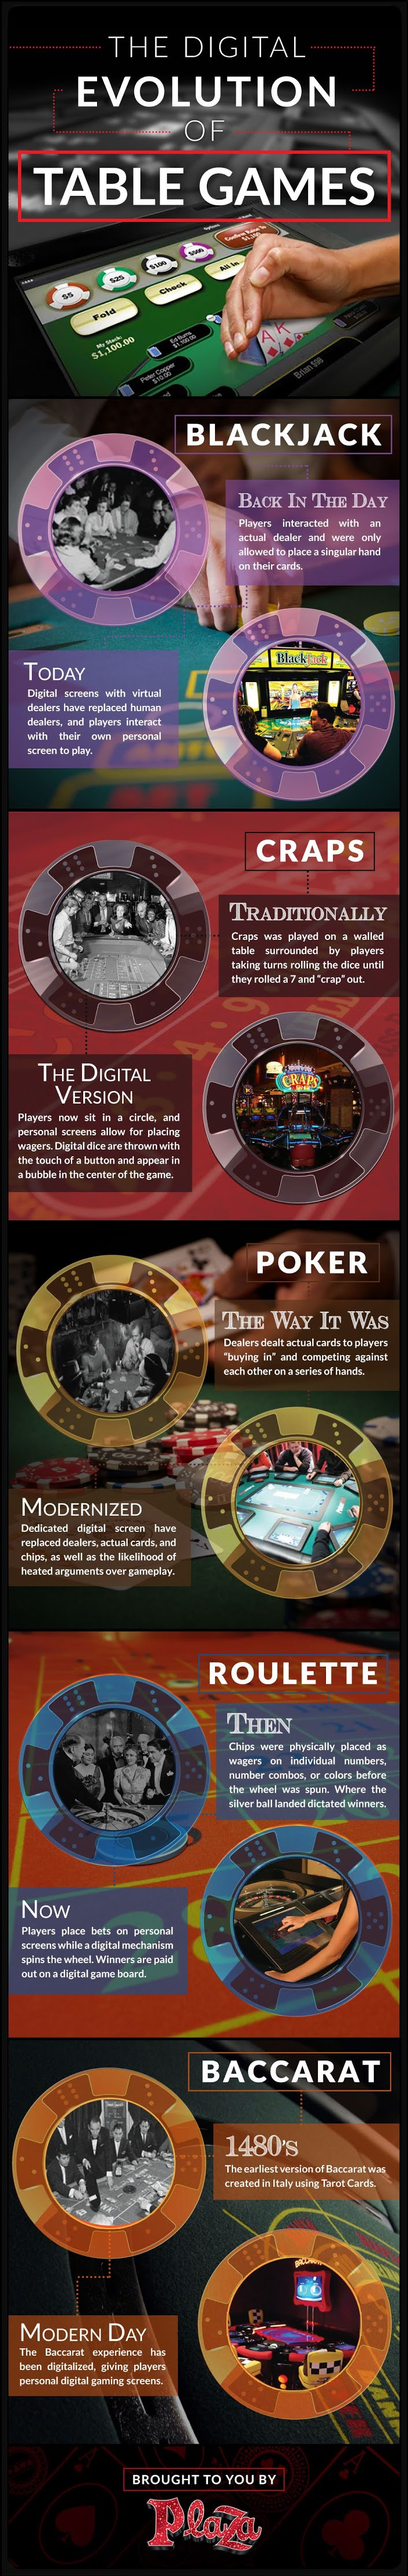 The Digital Evolution of Table Games #infographic